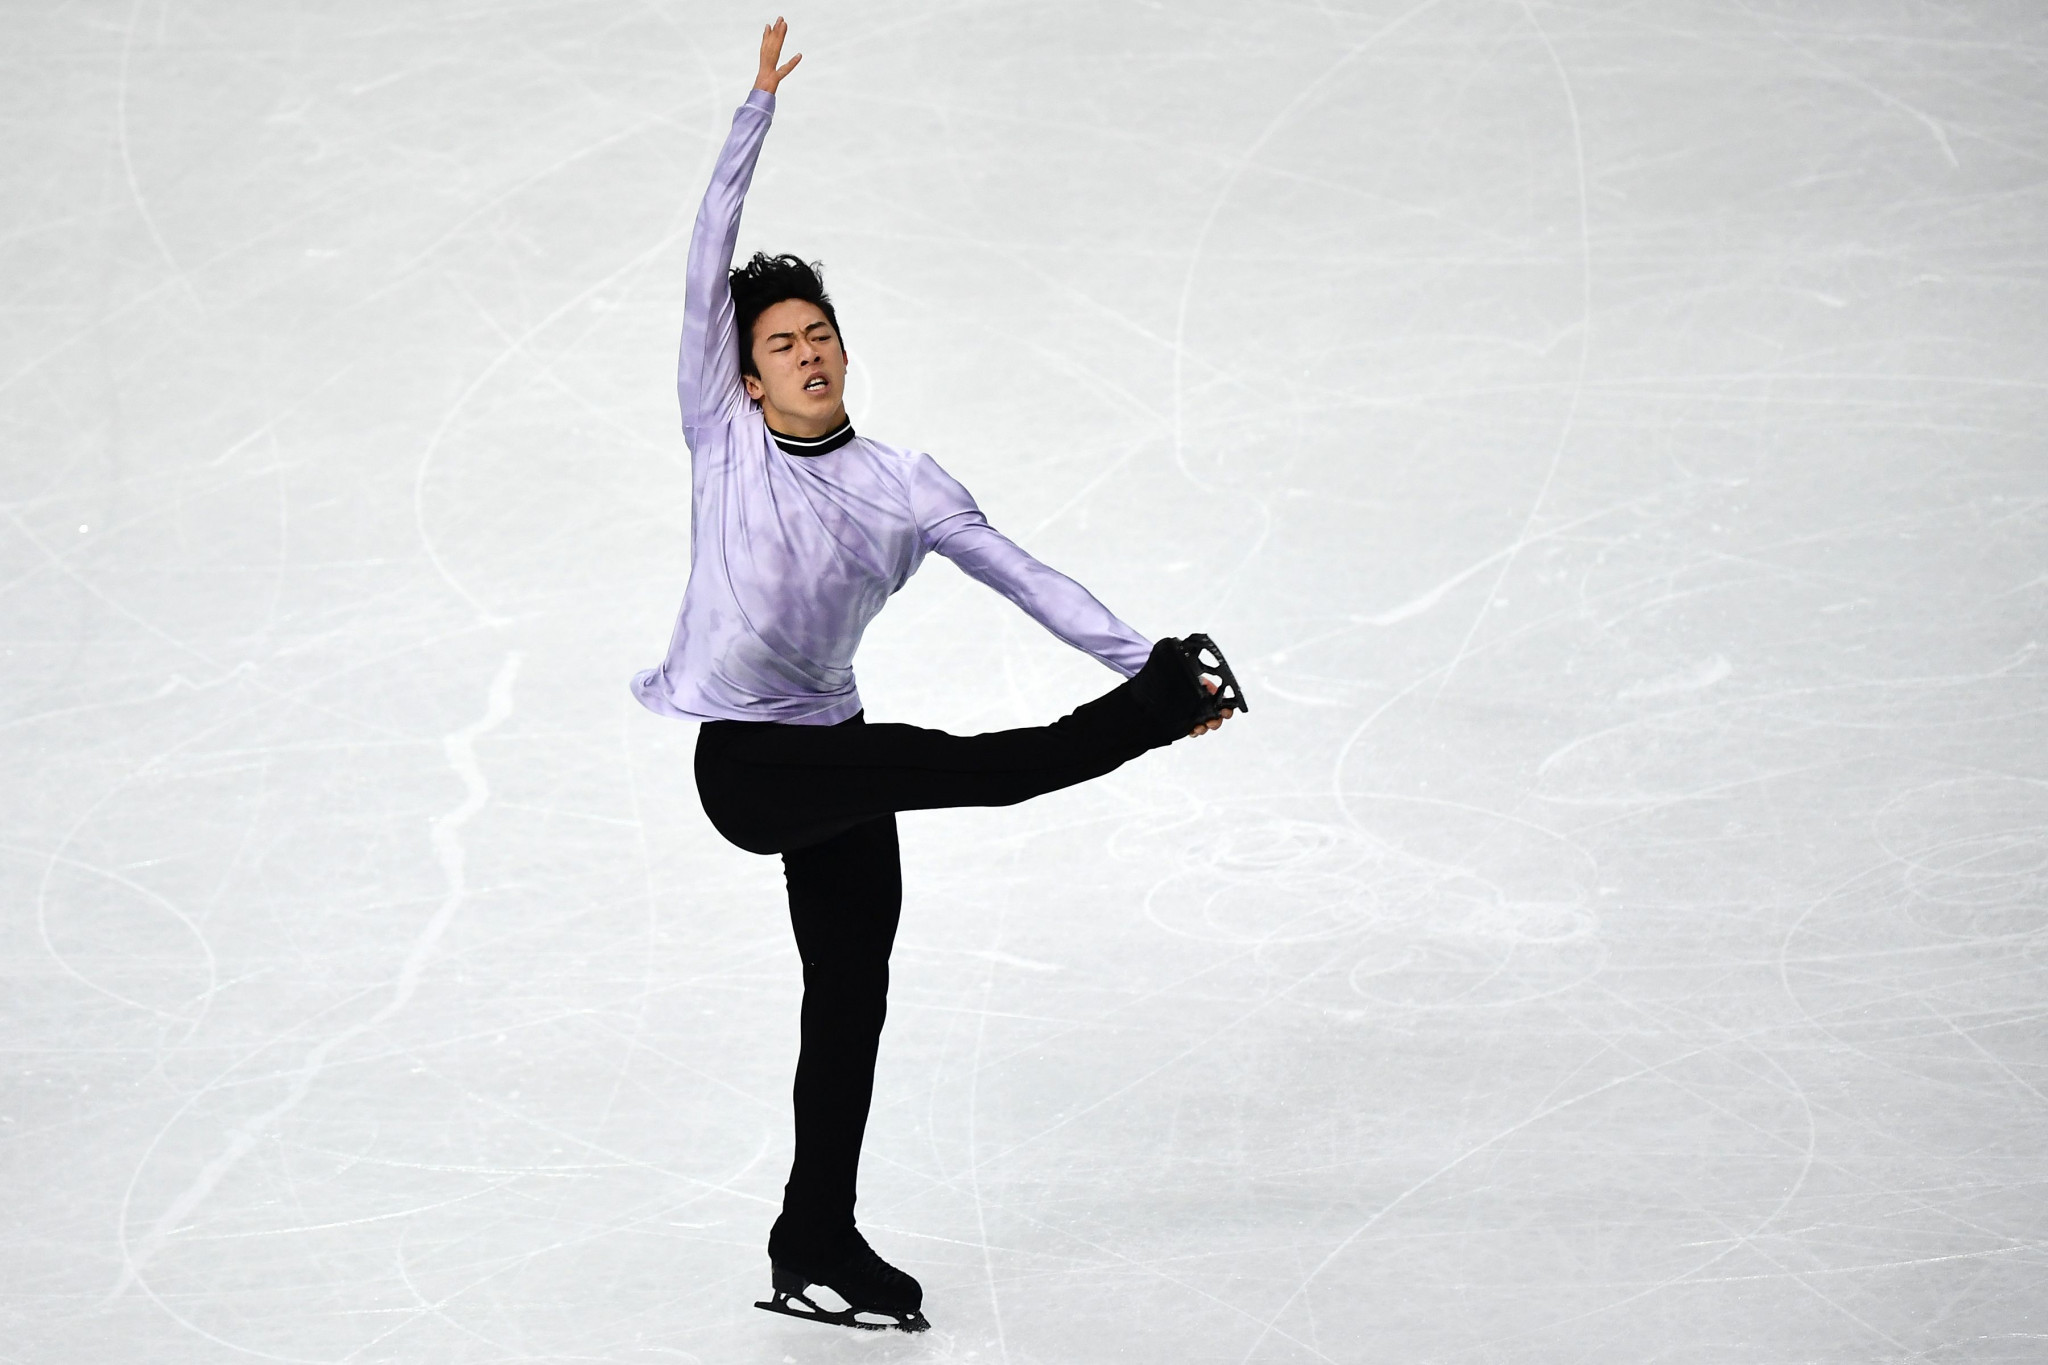 Nathan Chen leads the men's event at the ISU Grand Prix Final ©Getty Images